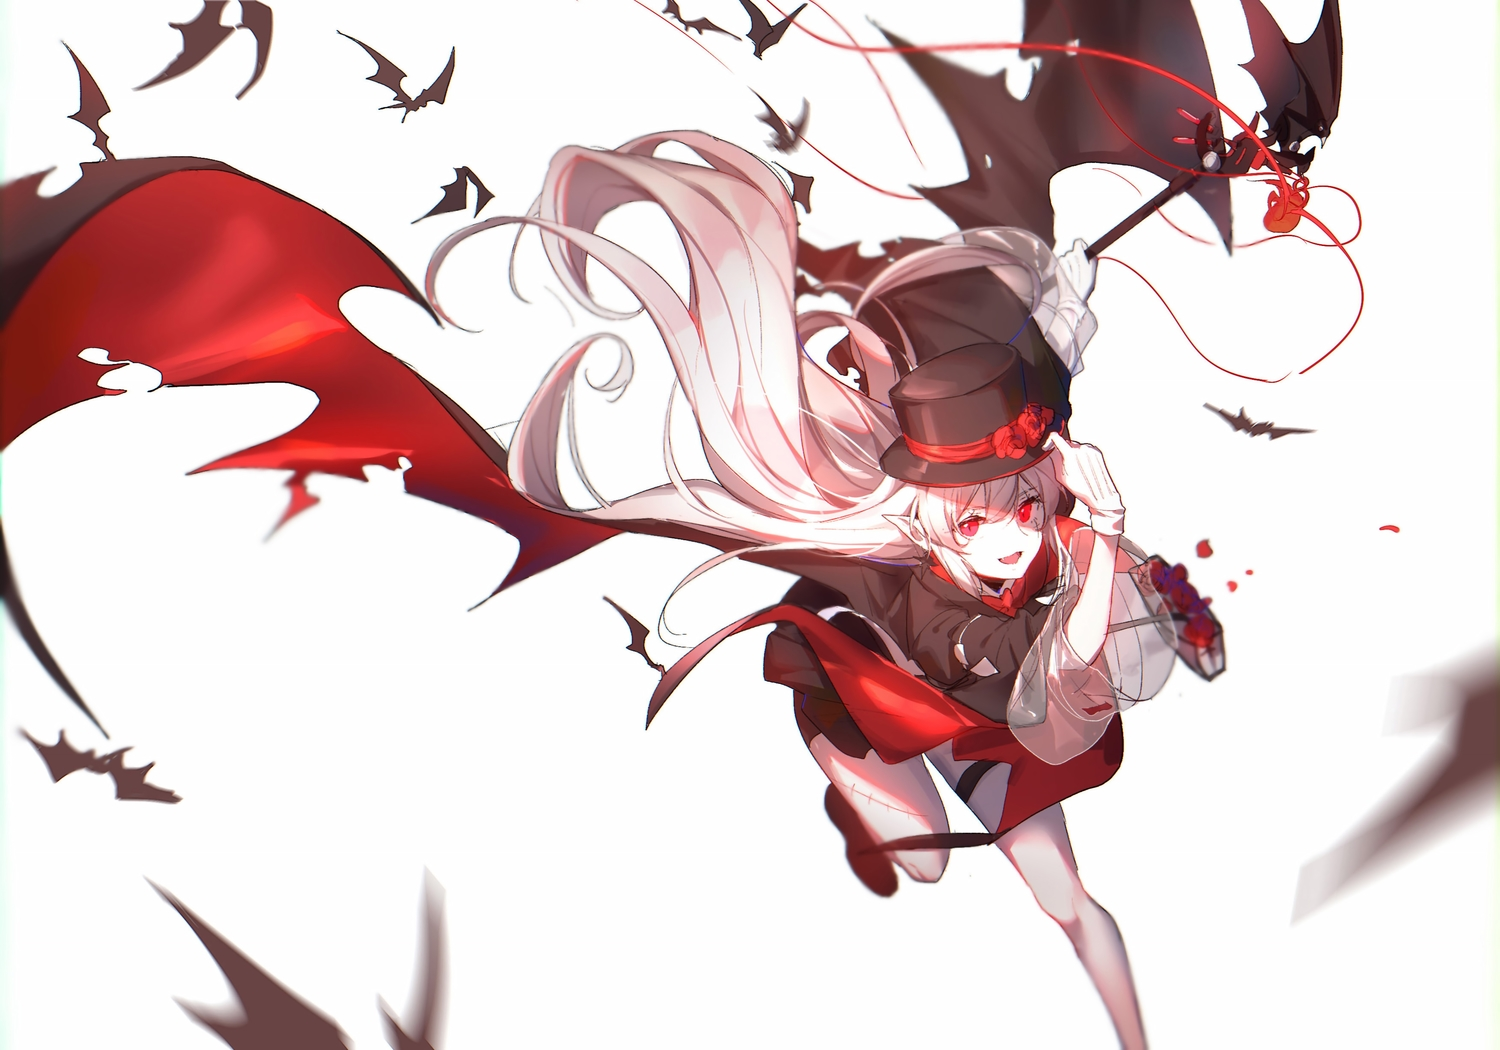 arknights fang gloves hat long_hair pointed_ears red_eyes vampire warfarin_(arknights) white white_hair wings yumuto